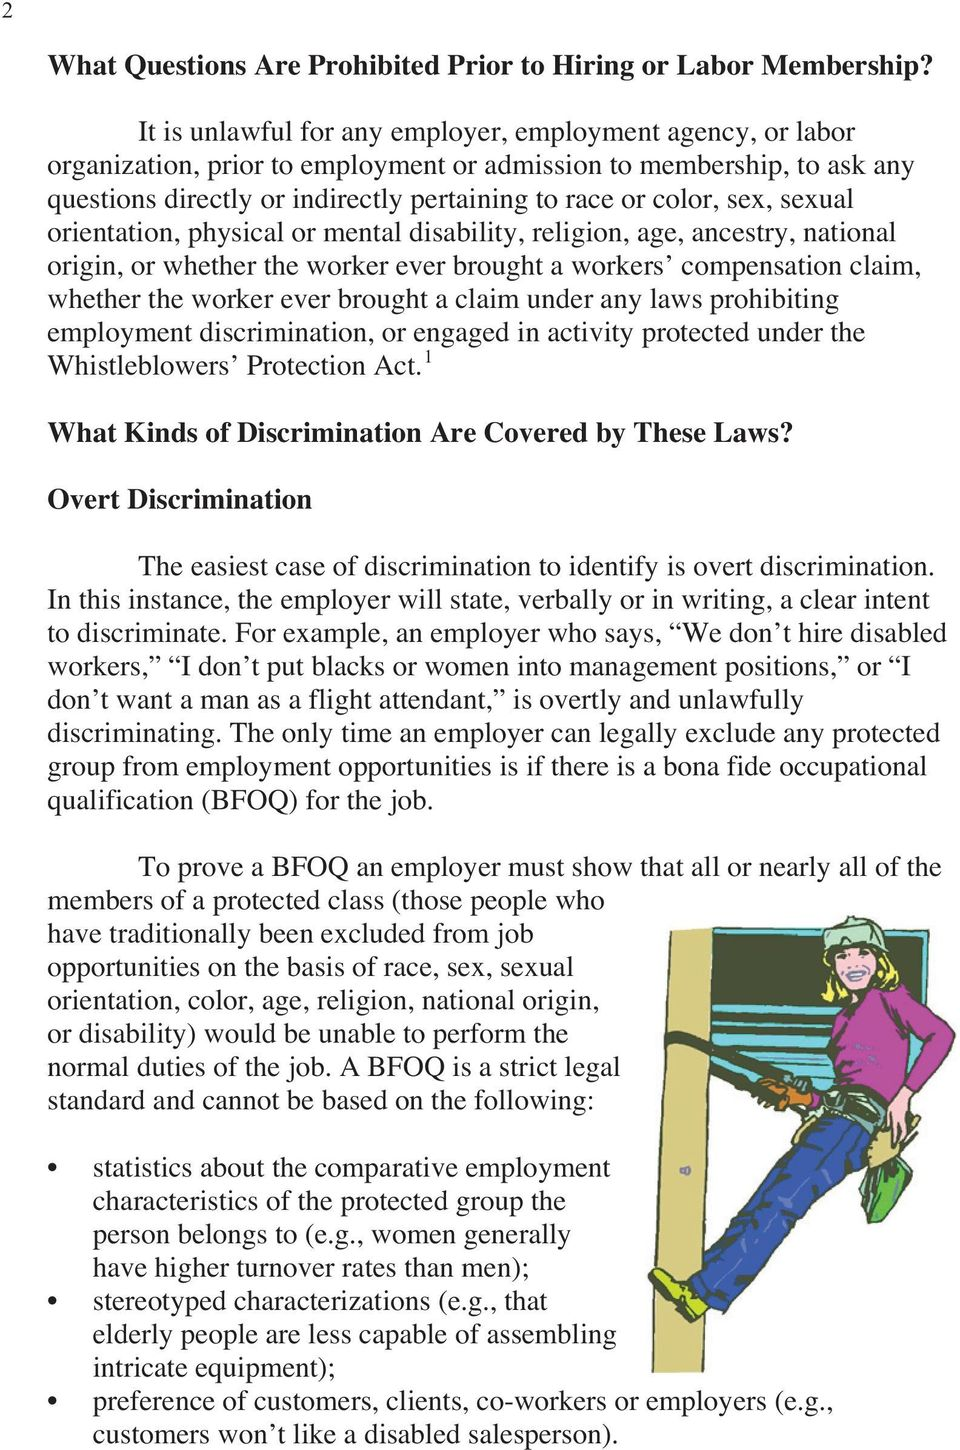 sex, sexual orientation, physical or mental disability, religion, age, ancestry, national origin, or whether the worker ever brought a workers compensation claim, whether the worker ever brought a